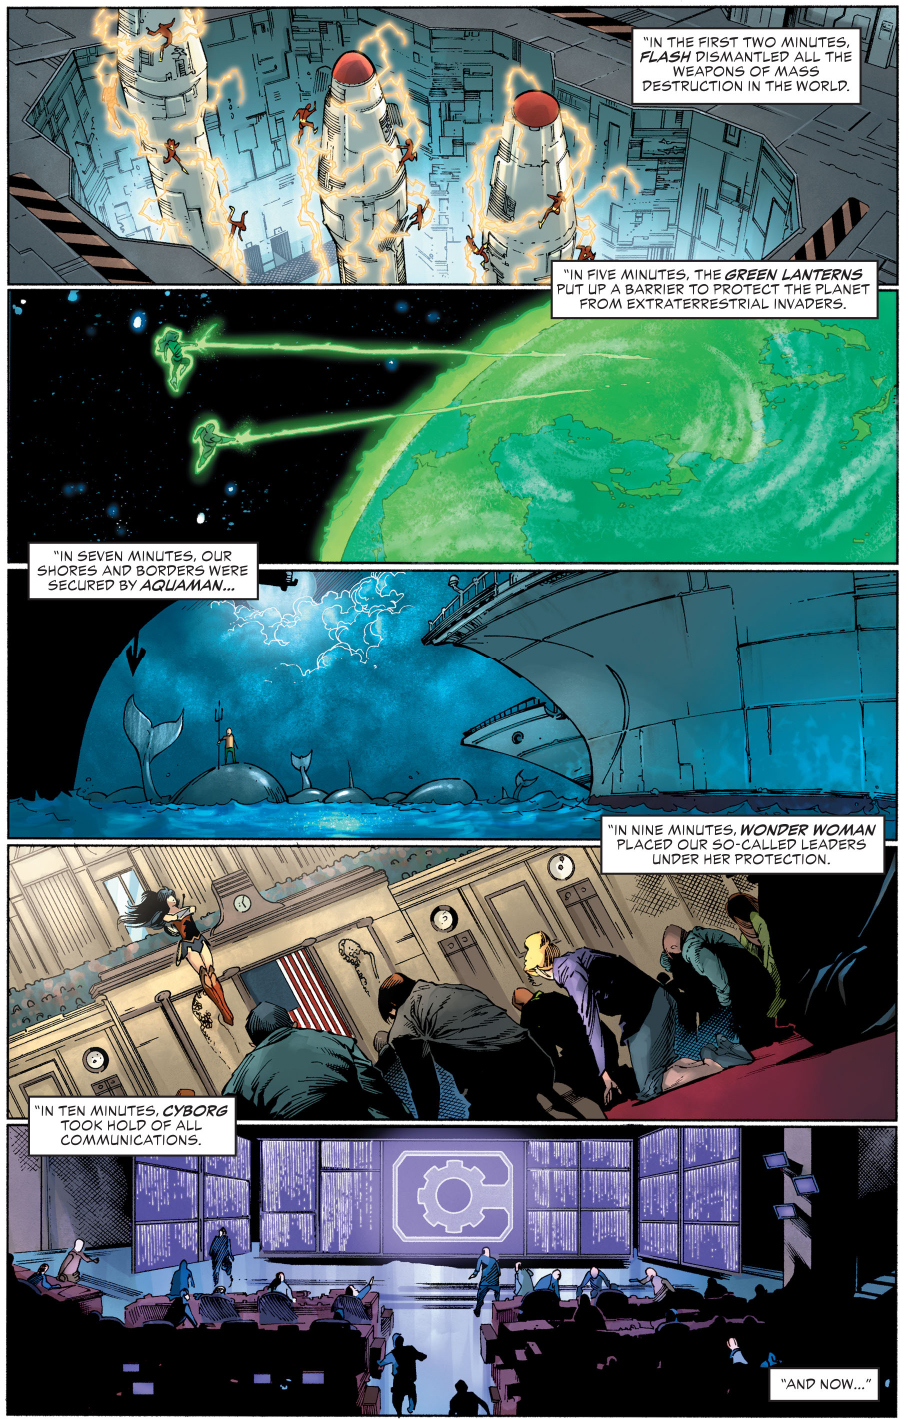 how-maxwell-lord-brought-peace-to-the-world